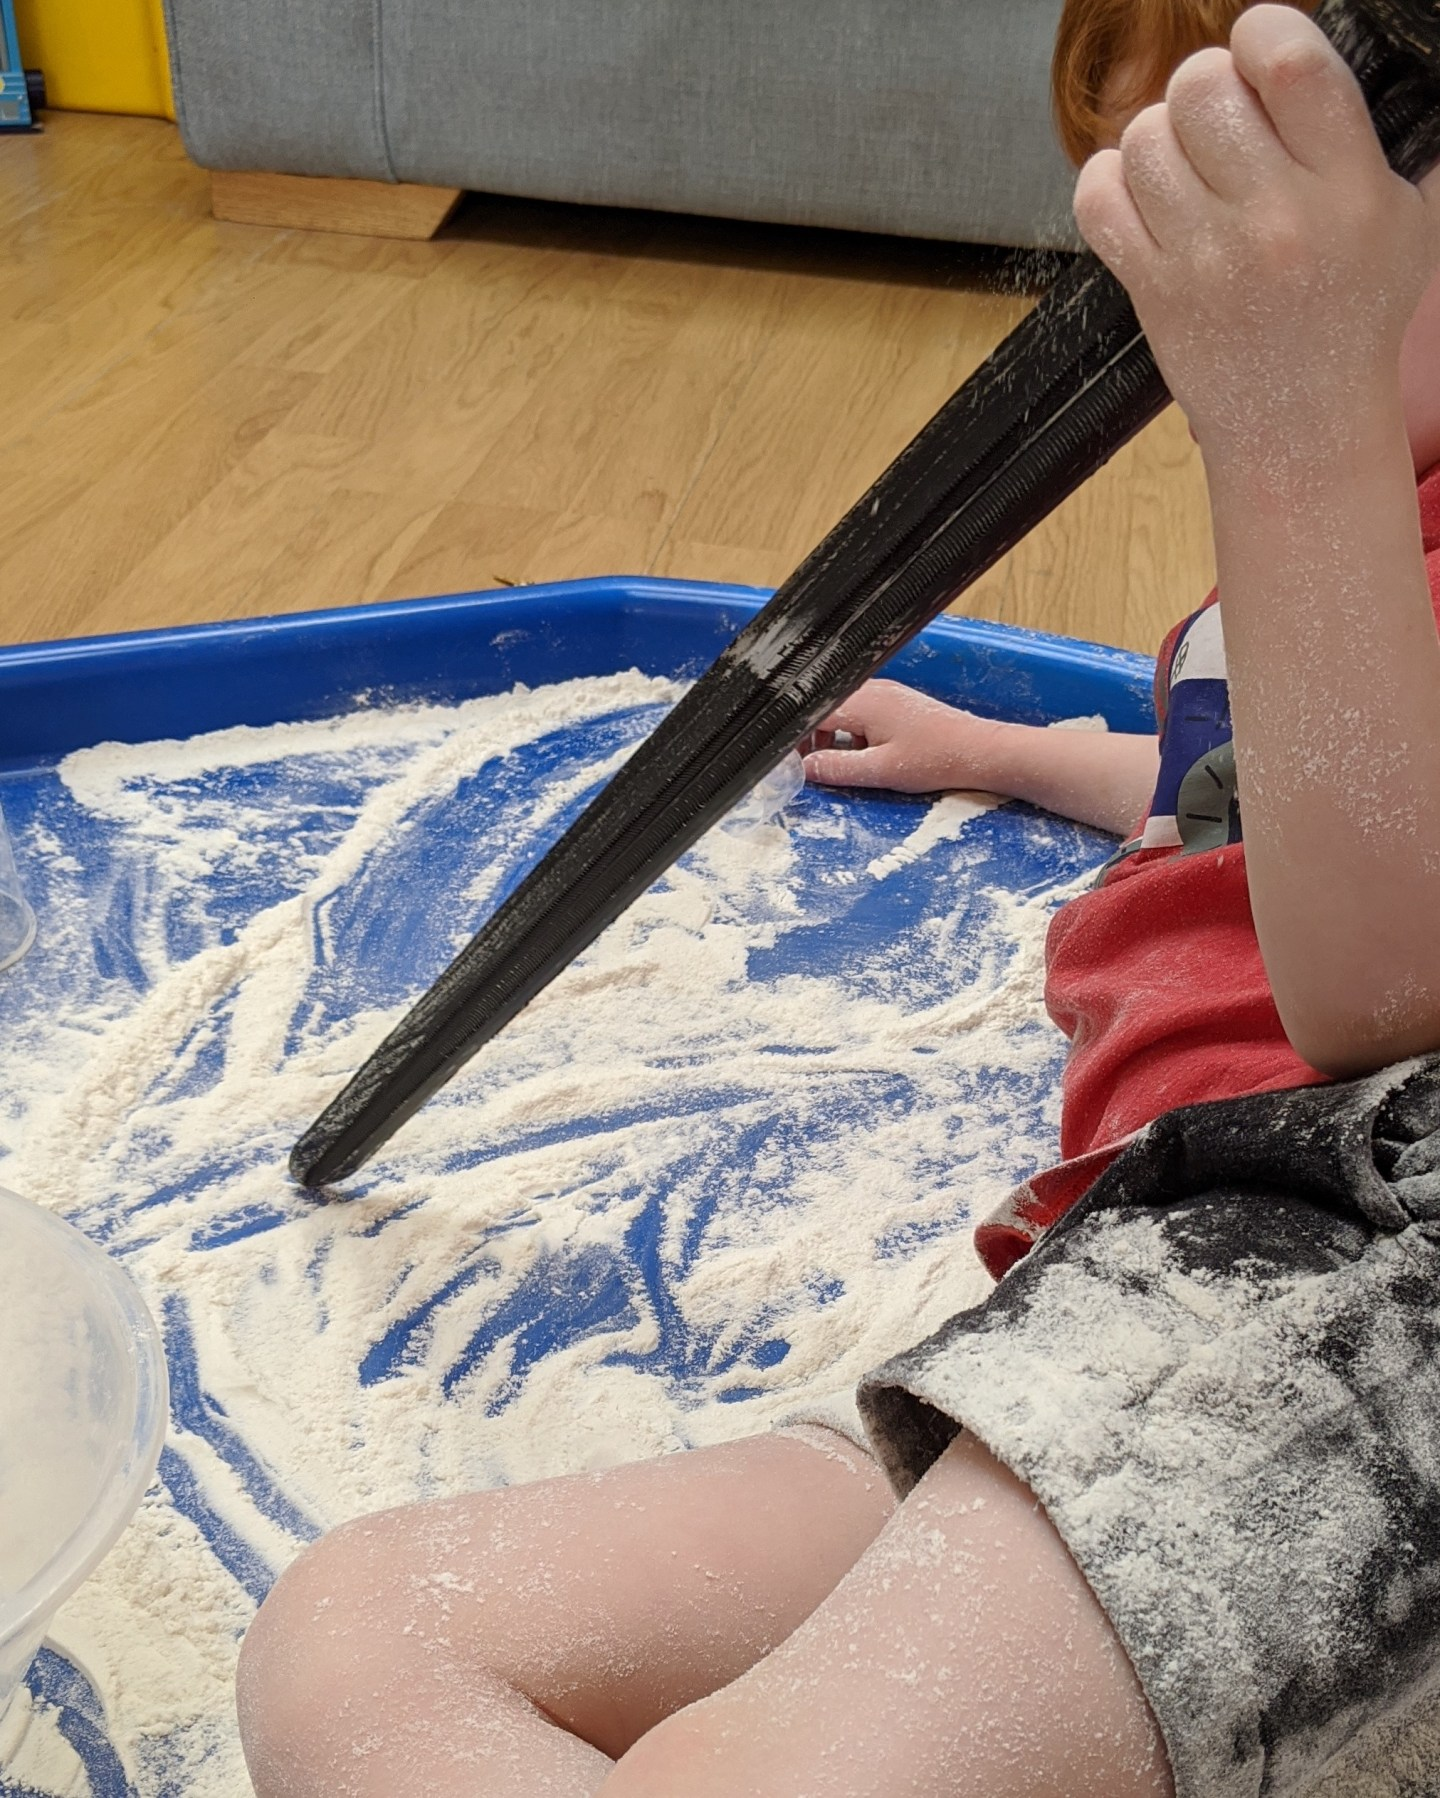 mark making with flour